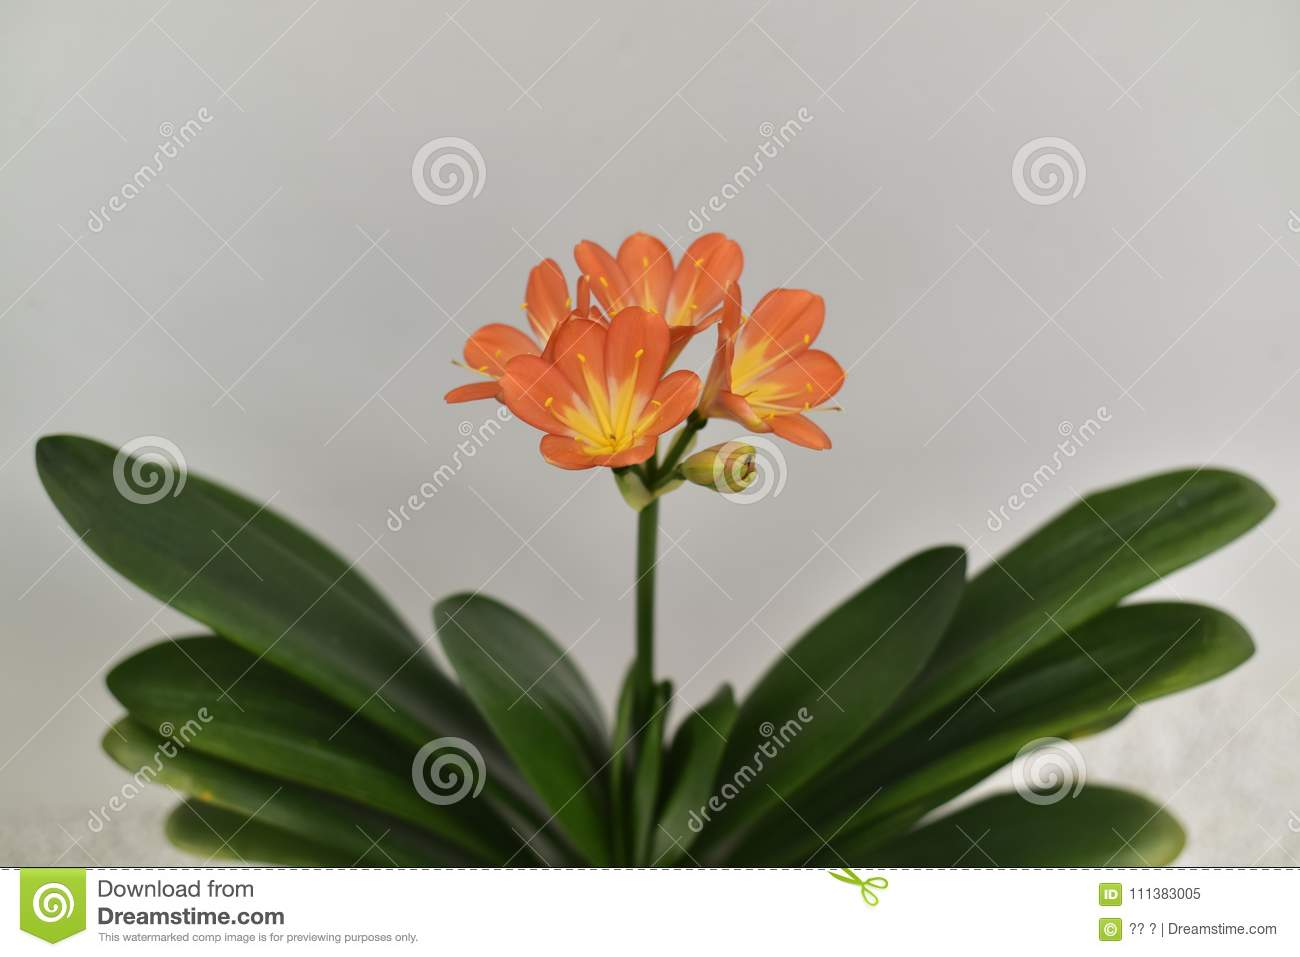 Rare clivia open in winter stock image image of flower 111383005 for the uezhu fumiyajunxiu of clivia red spider lily with a gentleman charm flowers such as orchids named noble of the meaning of clivia flower izmirmasajfo